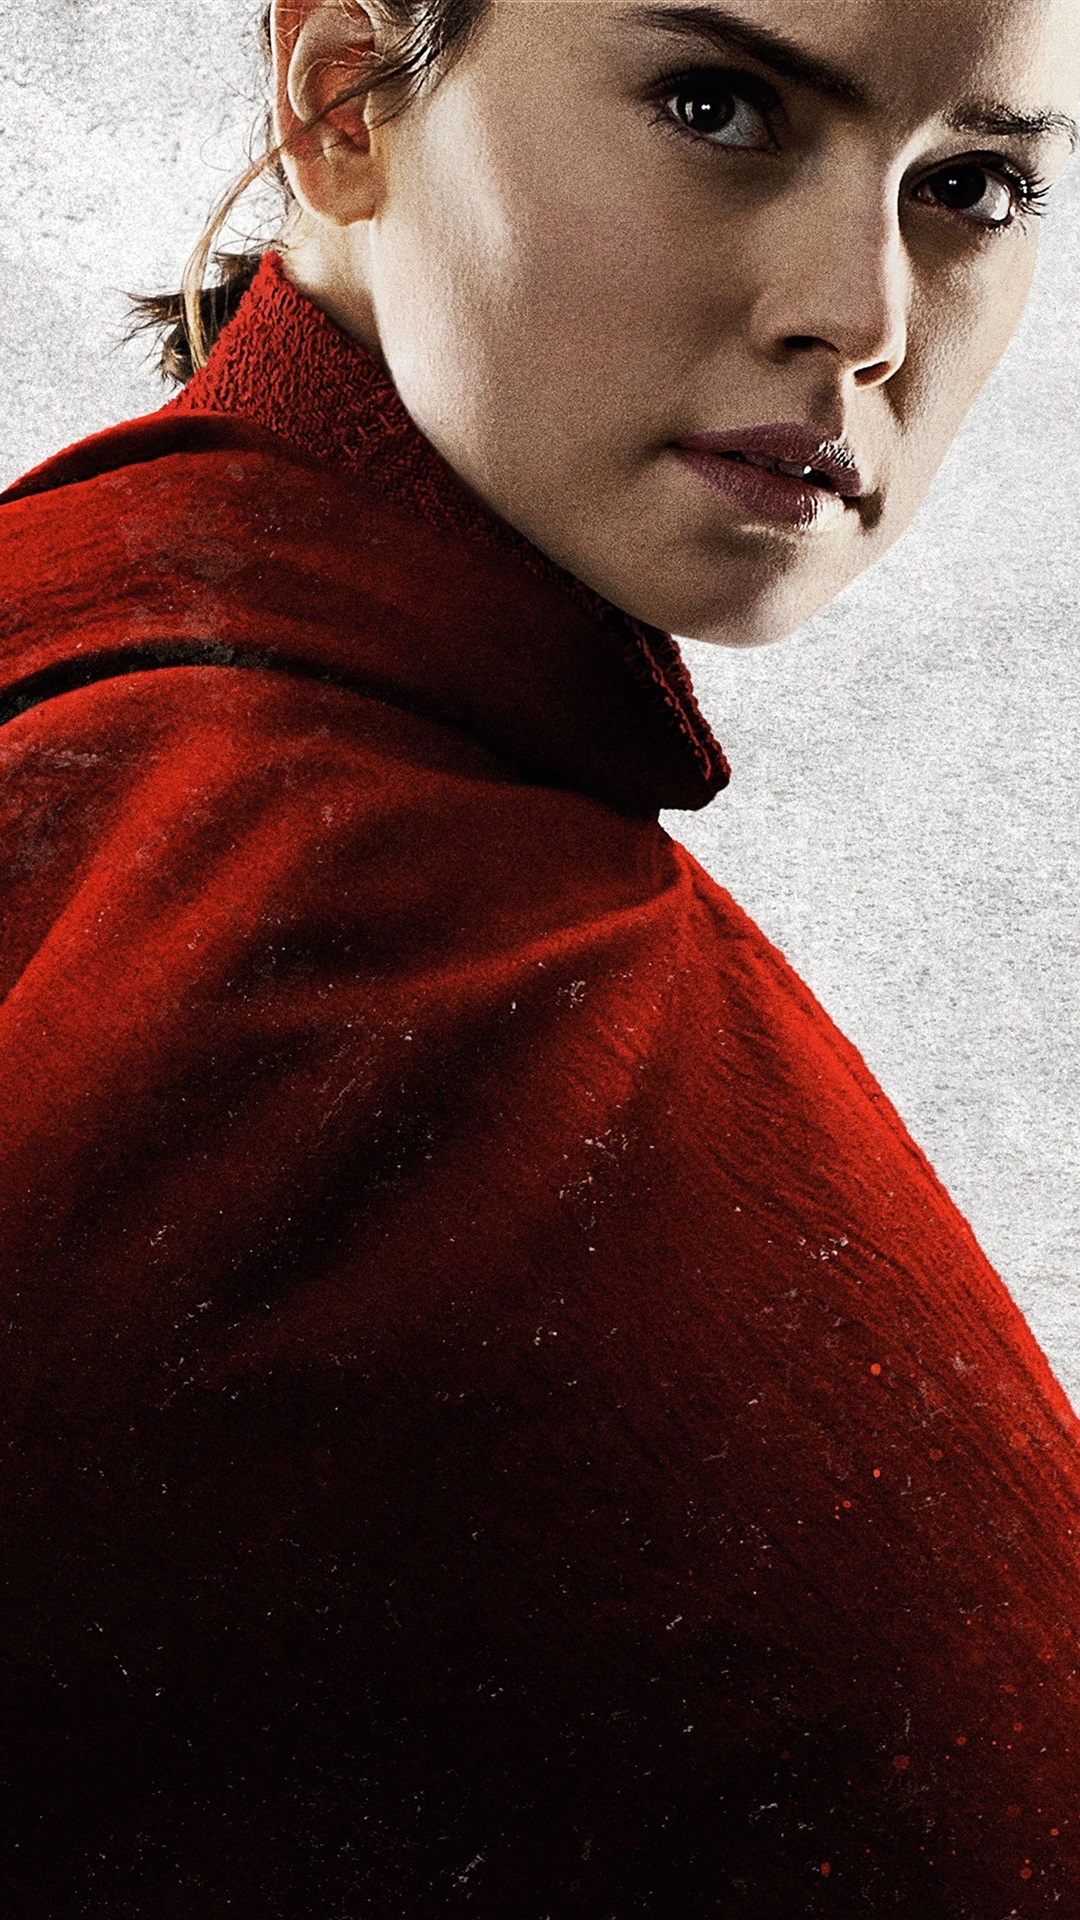 Daisy Ridley Star Wars The Last Jedi 1080x1920 Iphone 8 7 6 6s